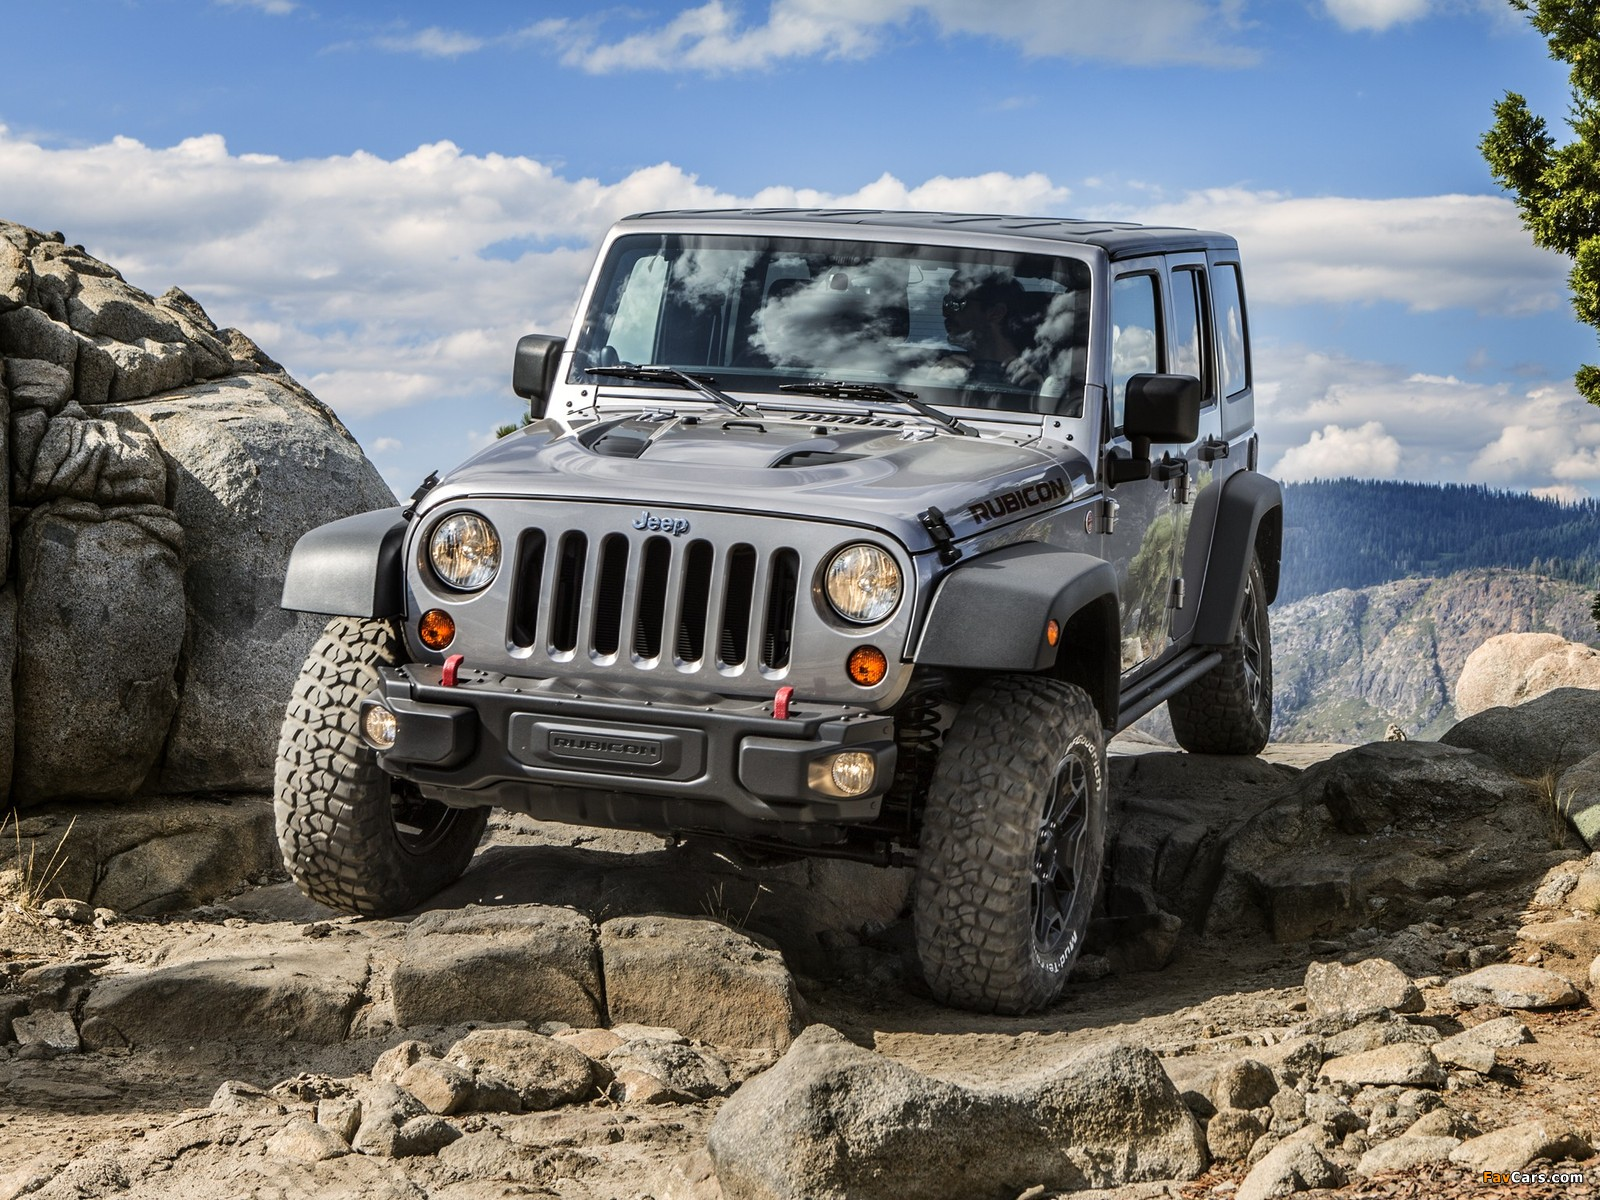 Jeep Wrangler Unlimited Rubicon 10th Anniversary (JK) 2013 wallpapers (1600 x 1200)